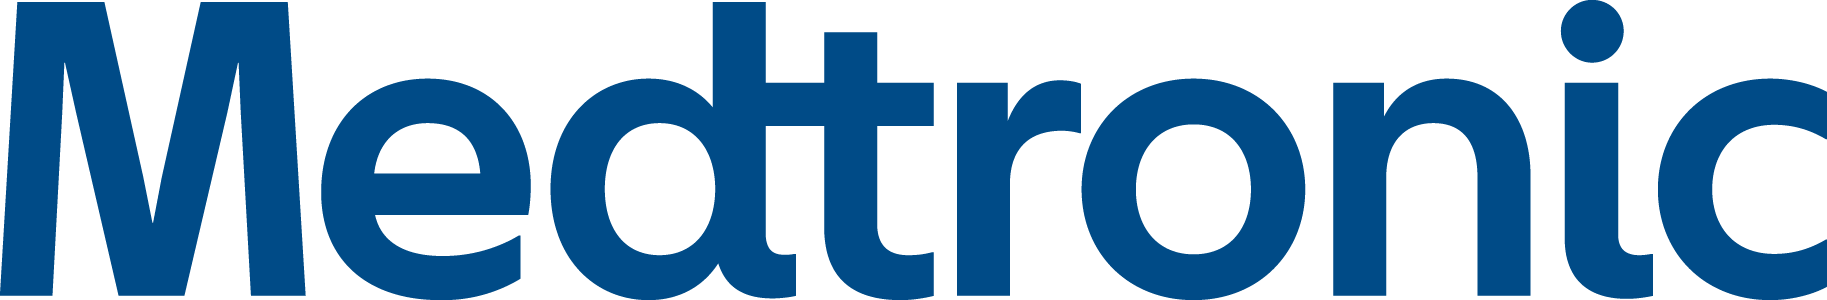 Blue medtronic logo